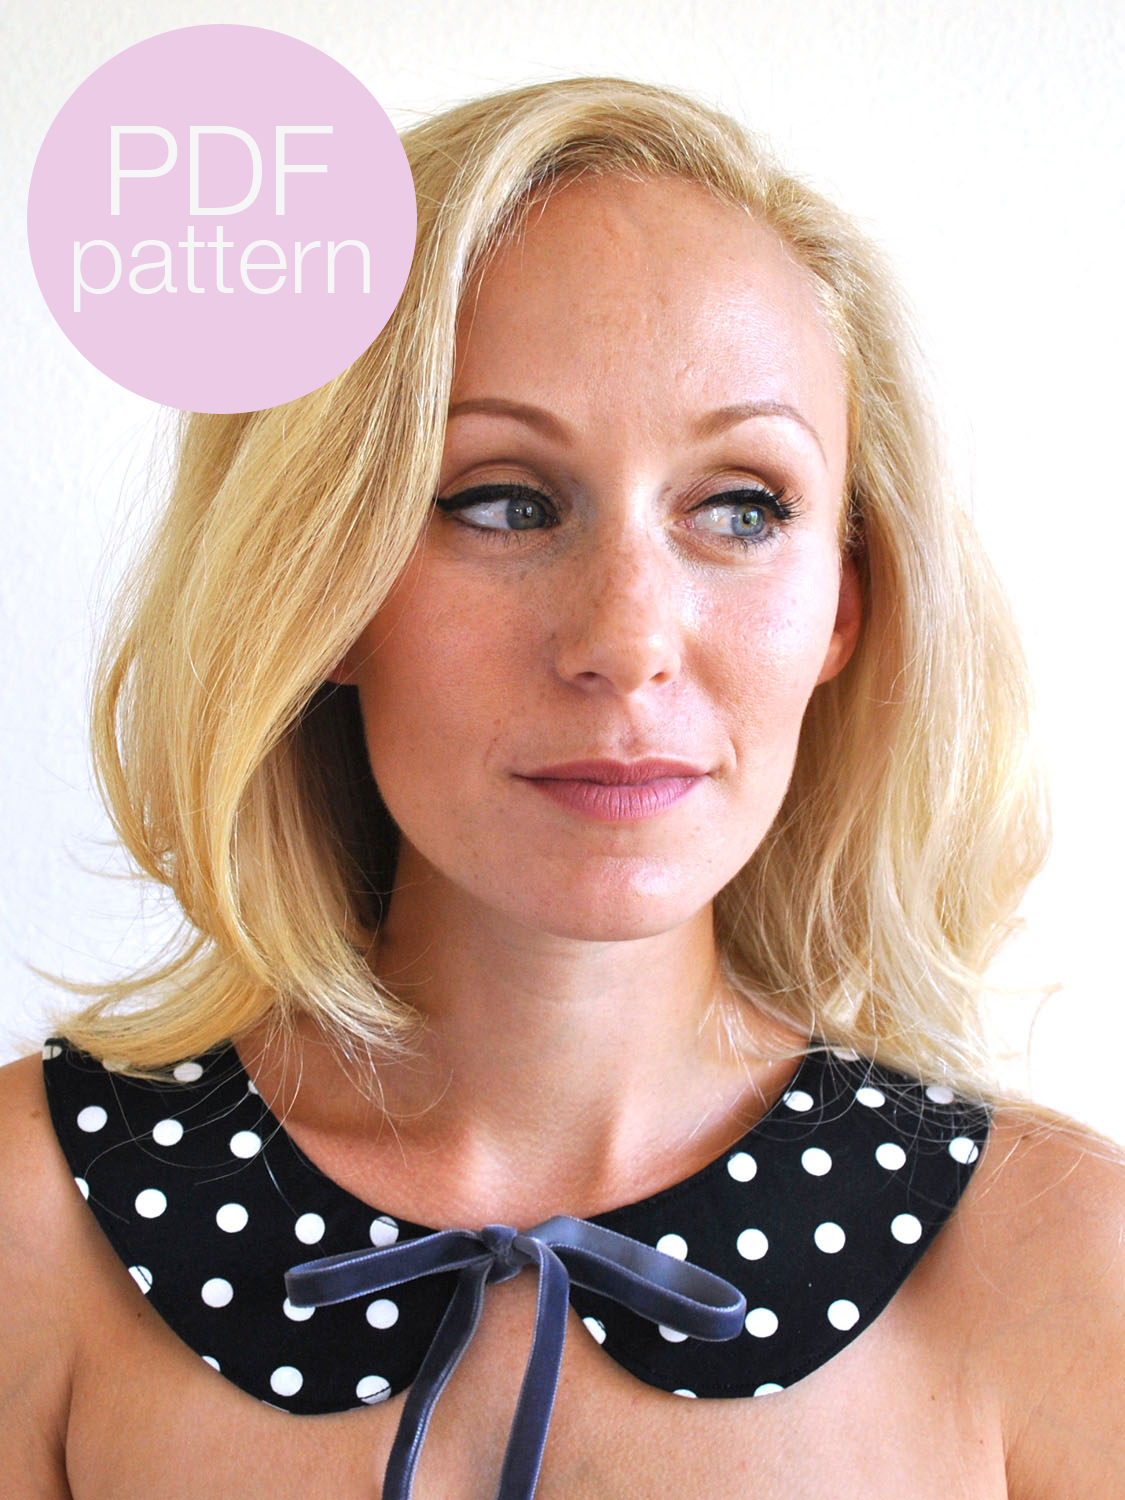 rosemary collar by christine haynes patterns